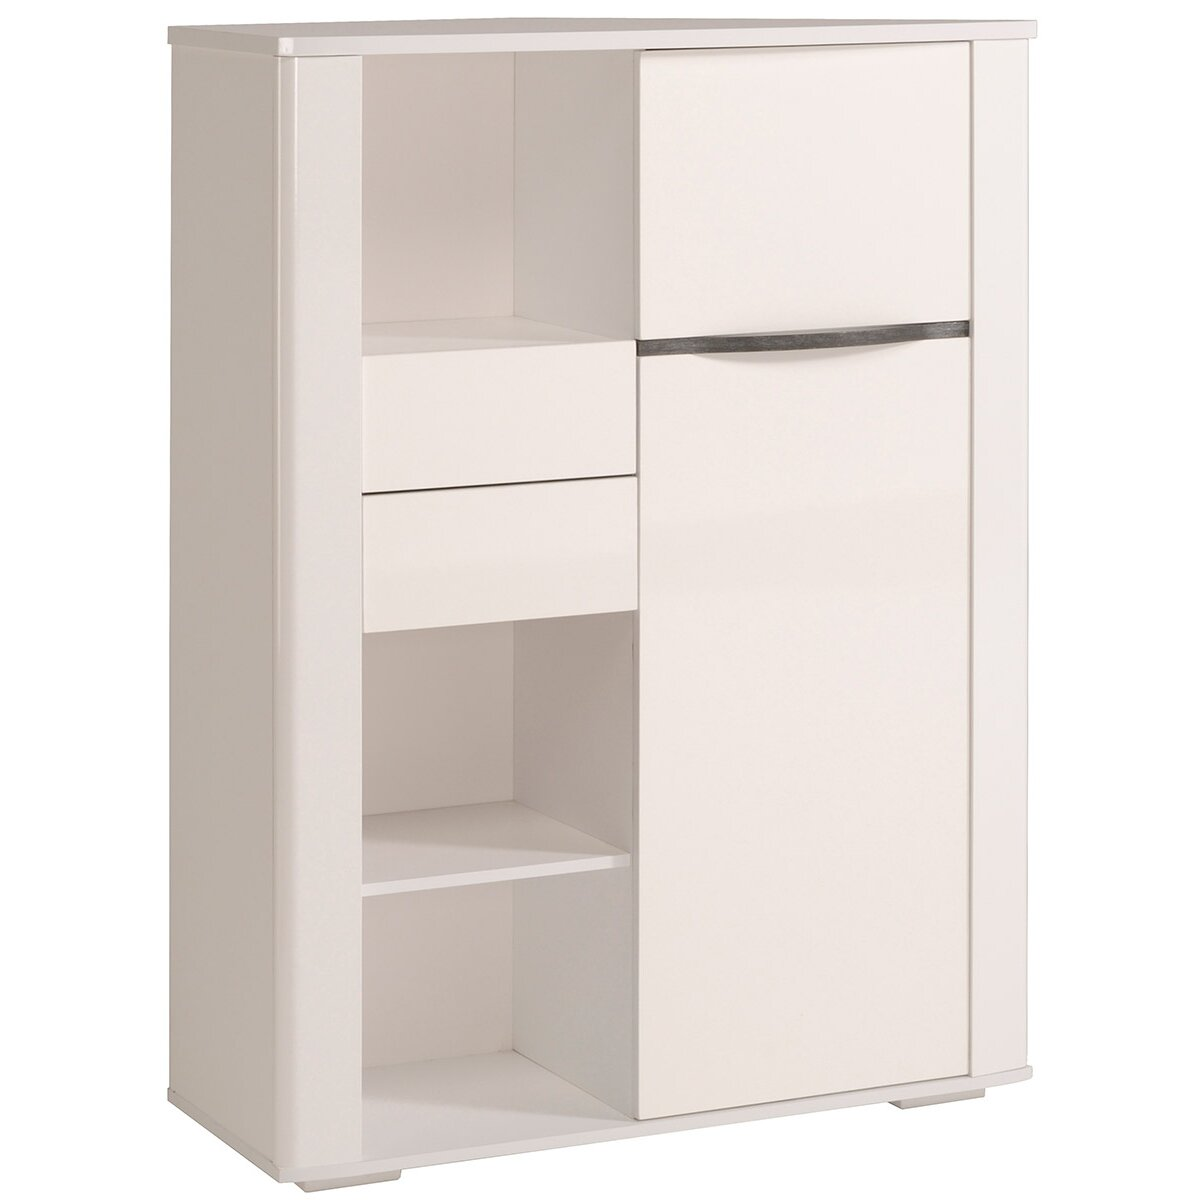 Parisot ceram 1 door storage cabinet reviews wayfair for 1 door storage cabinet